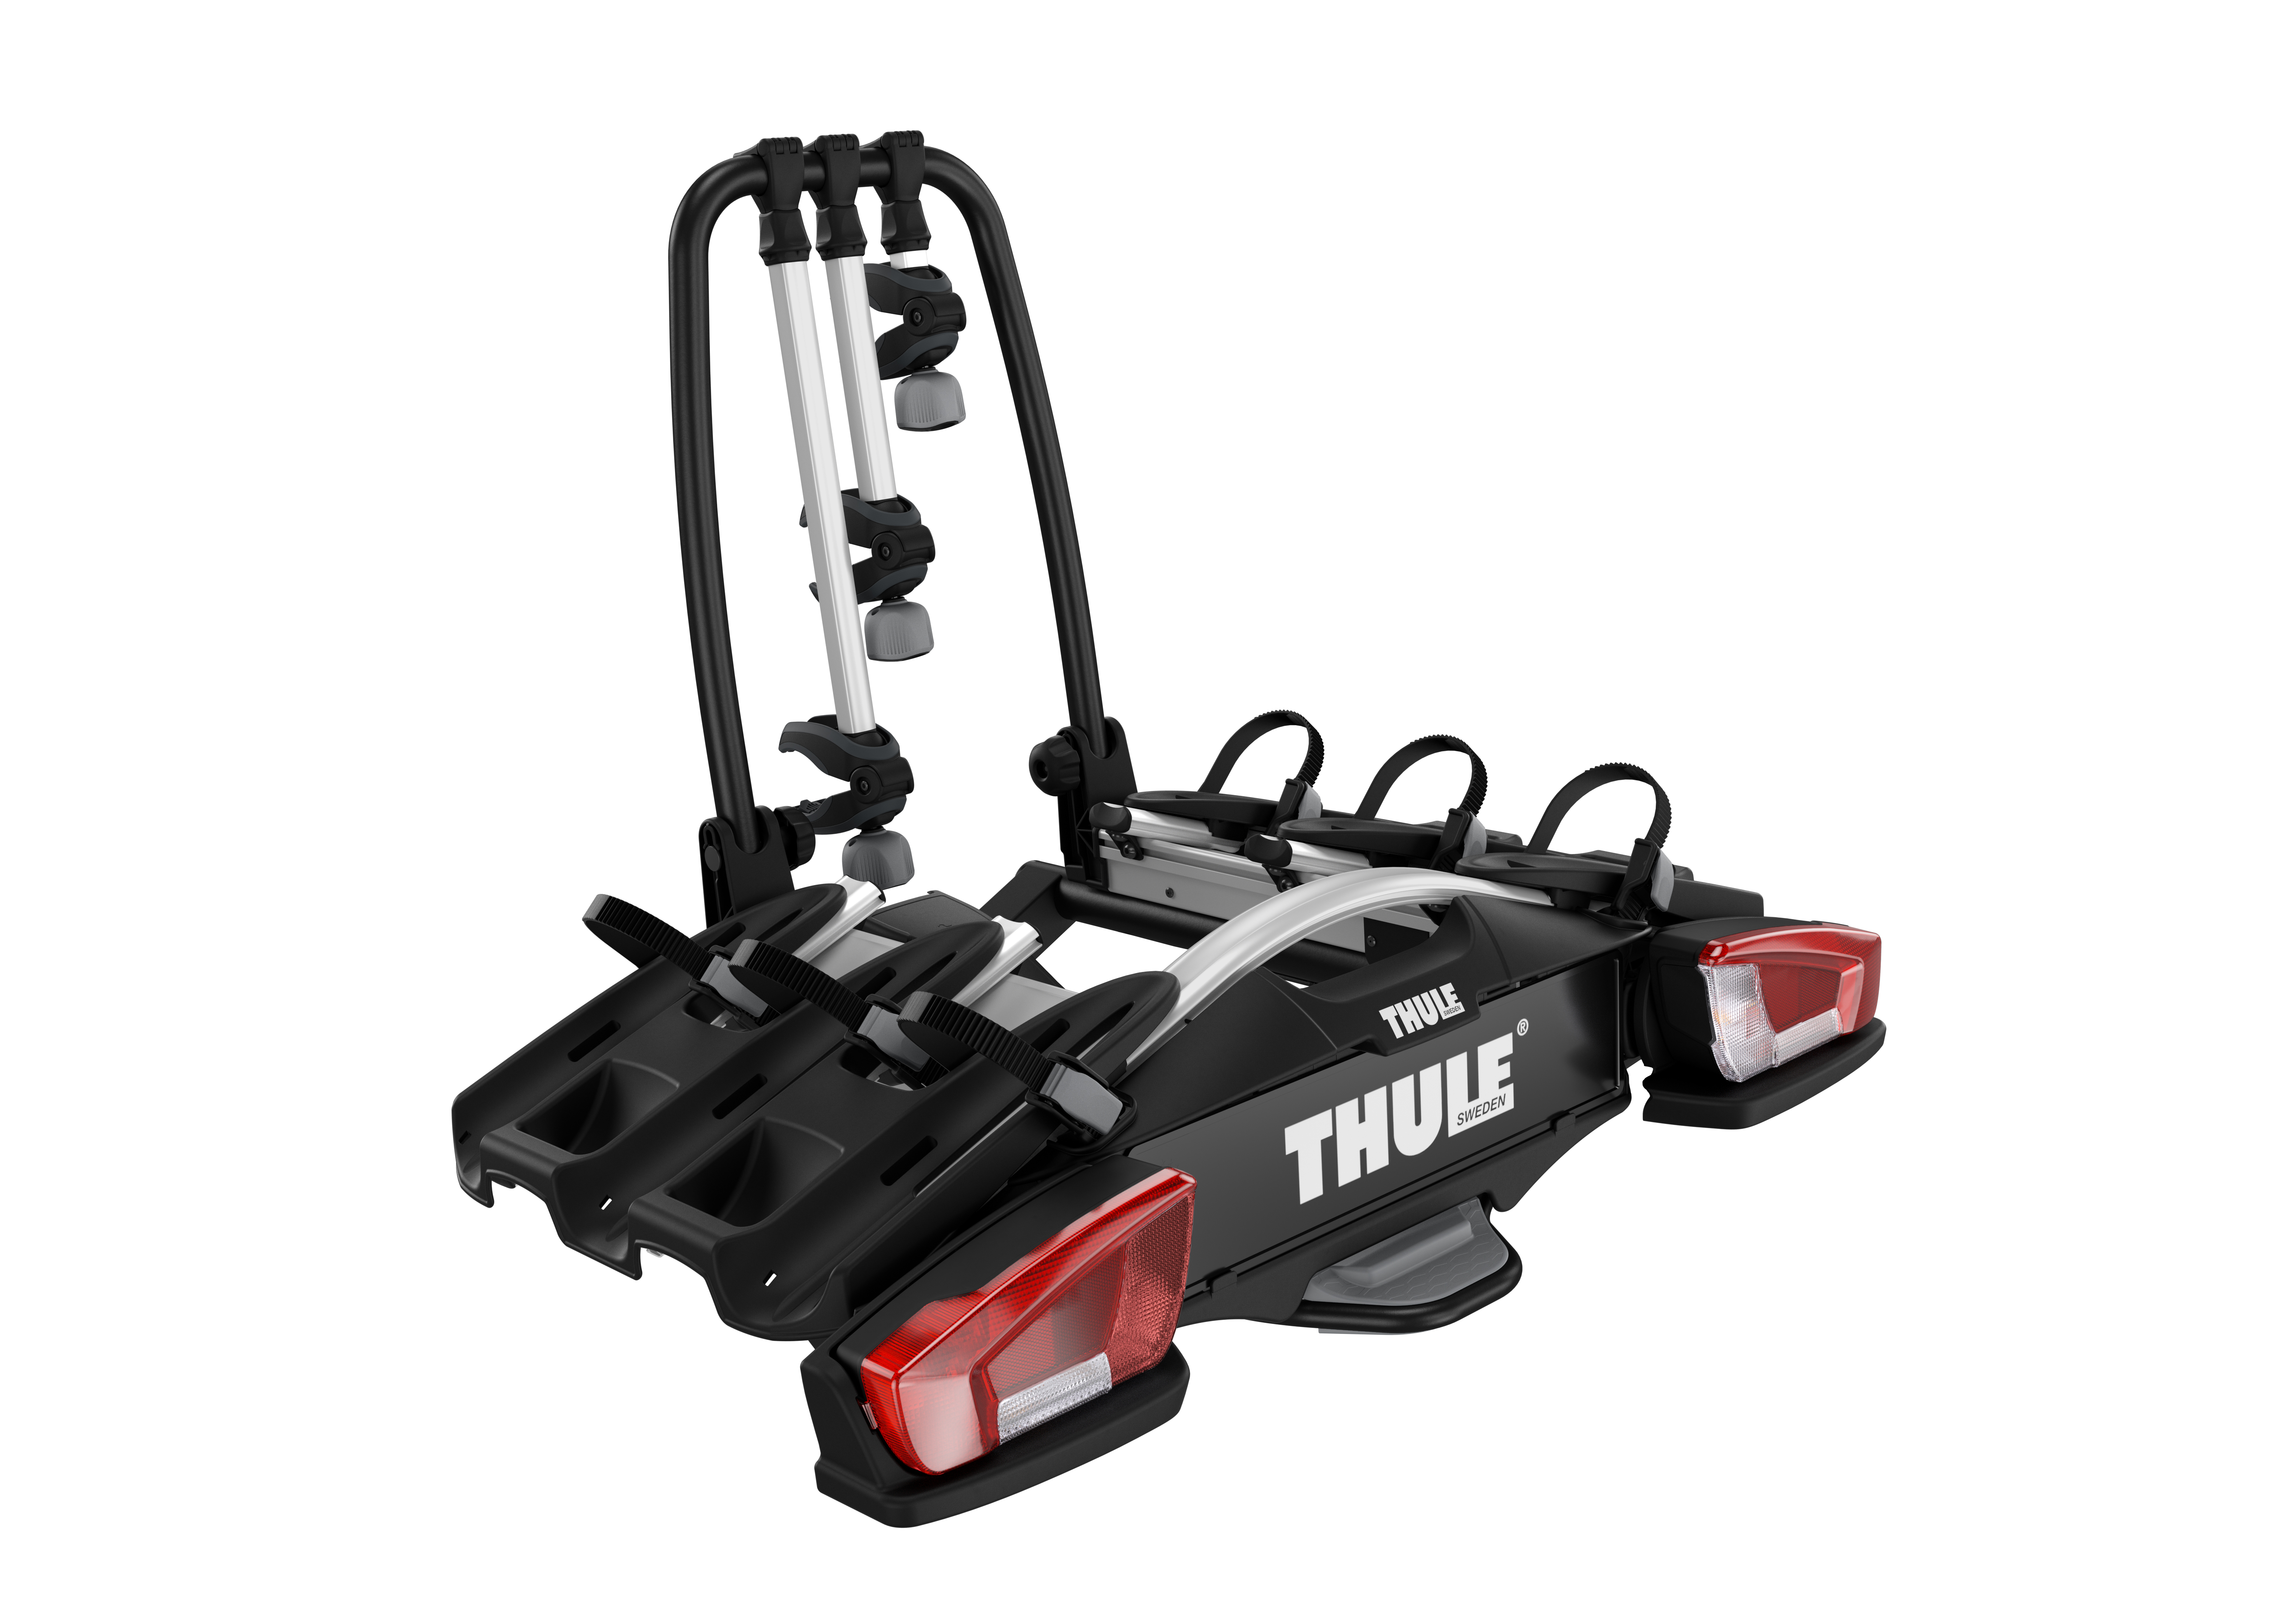 thule velocompact 927 towbar bike carrier for 3 4 bikes. Black Bedroom Furniture Sets. Home Design Ideas